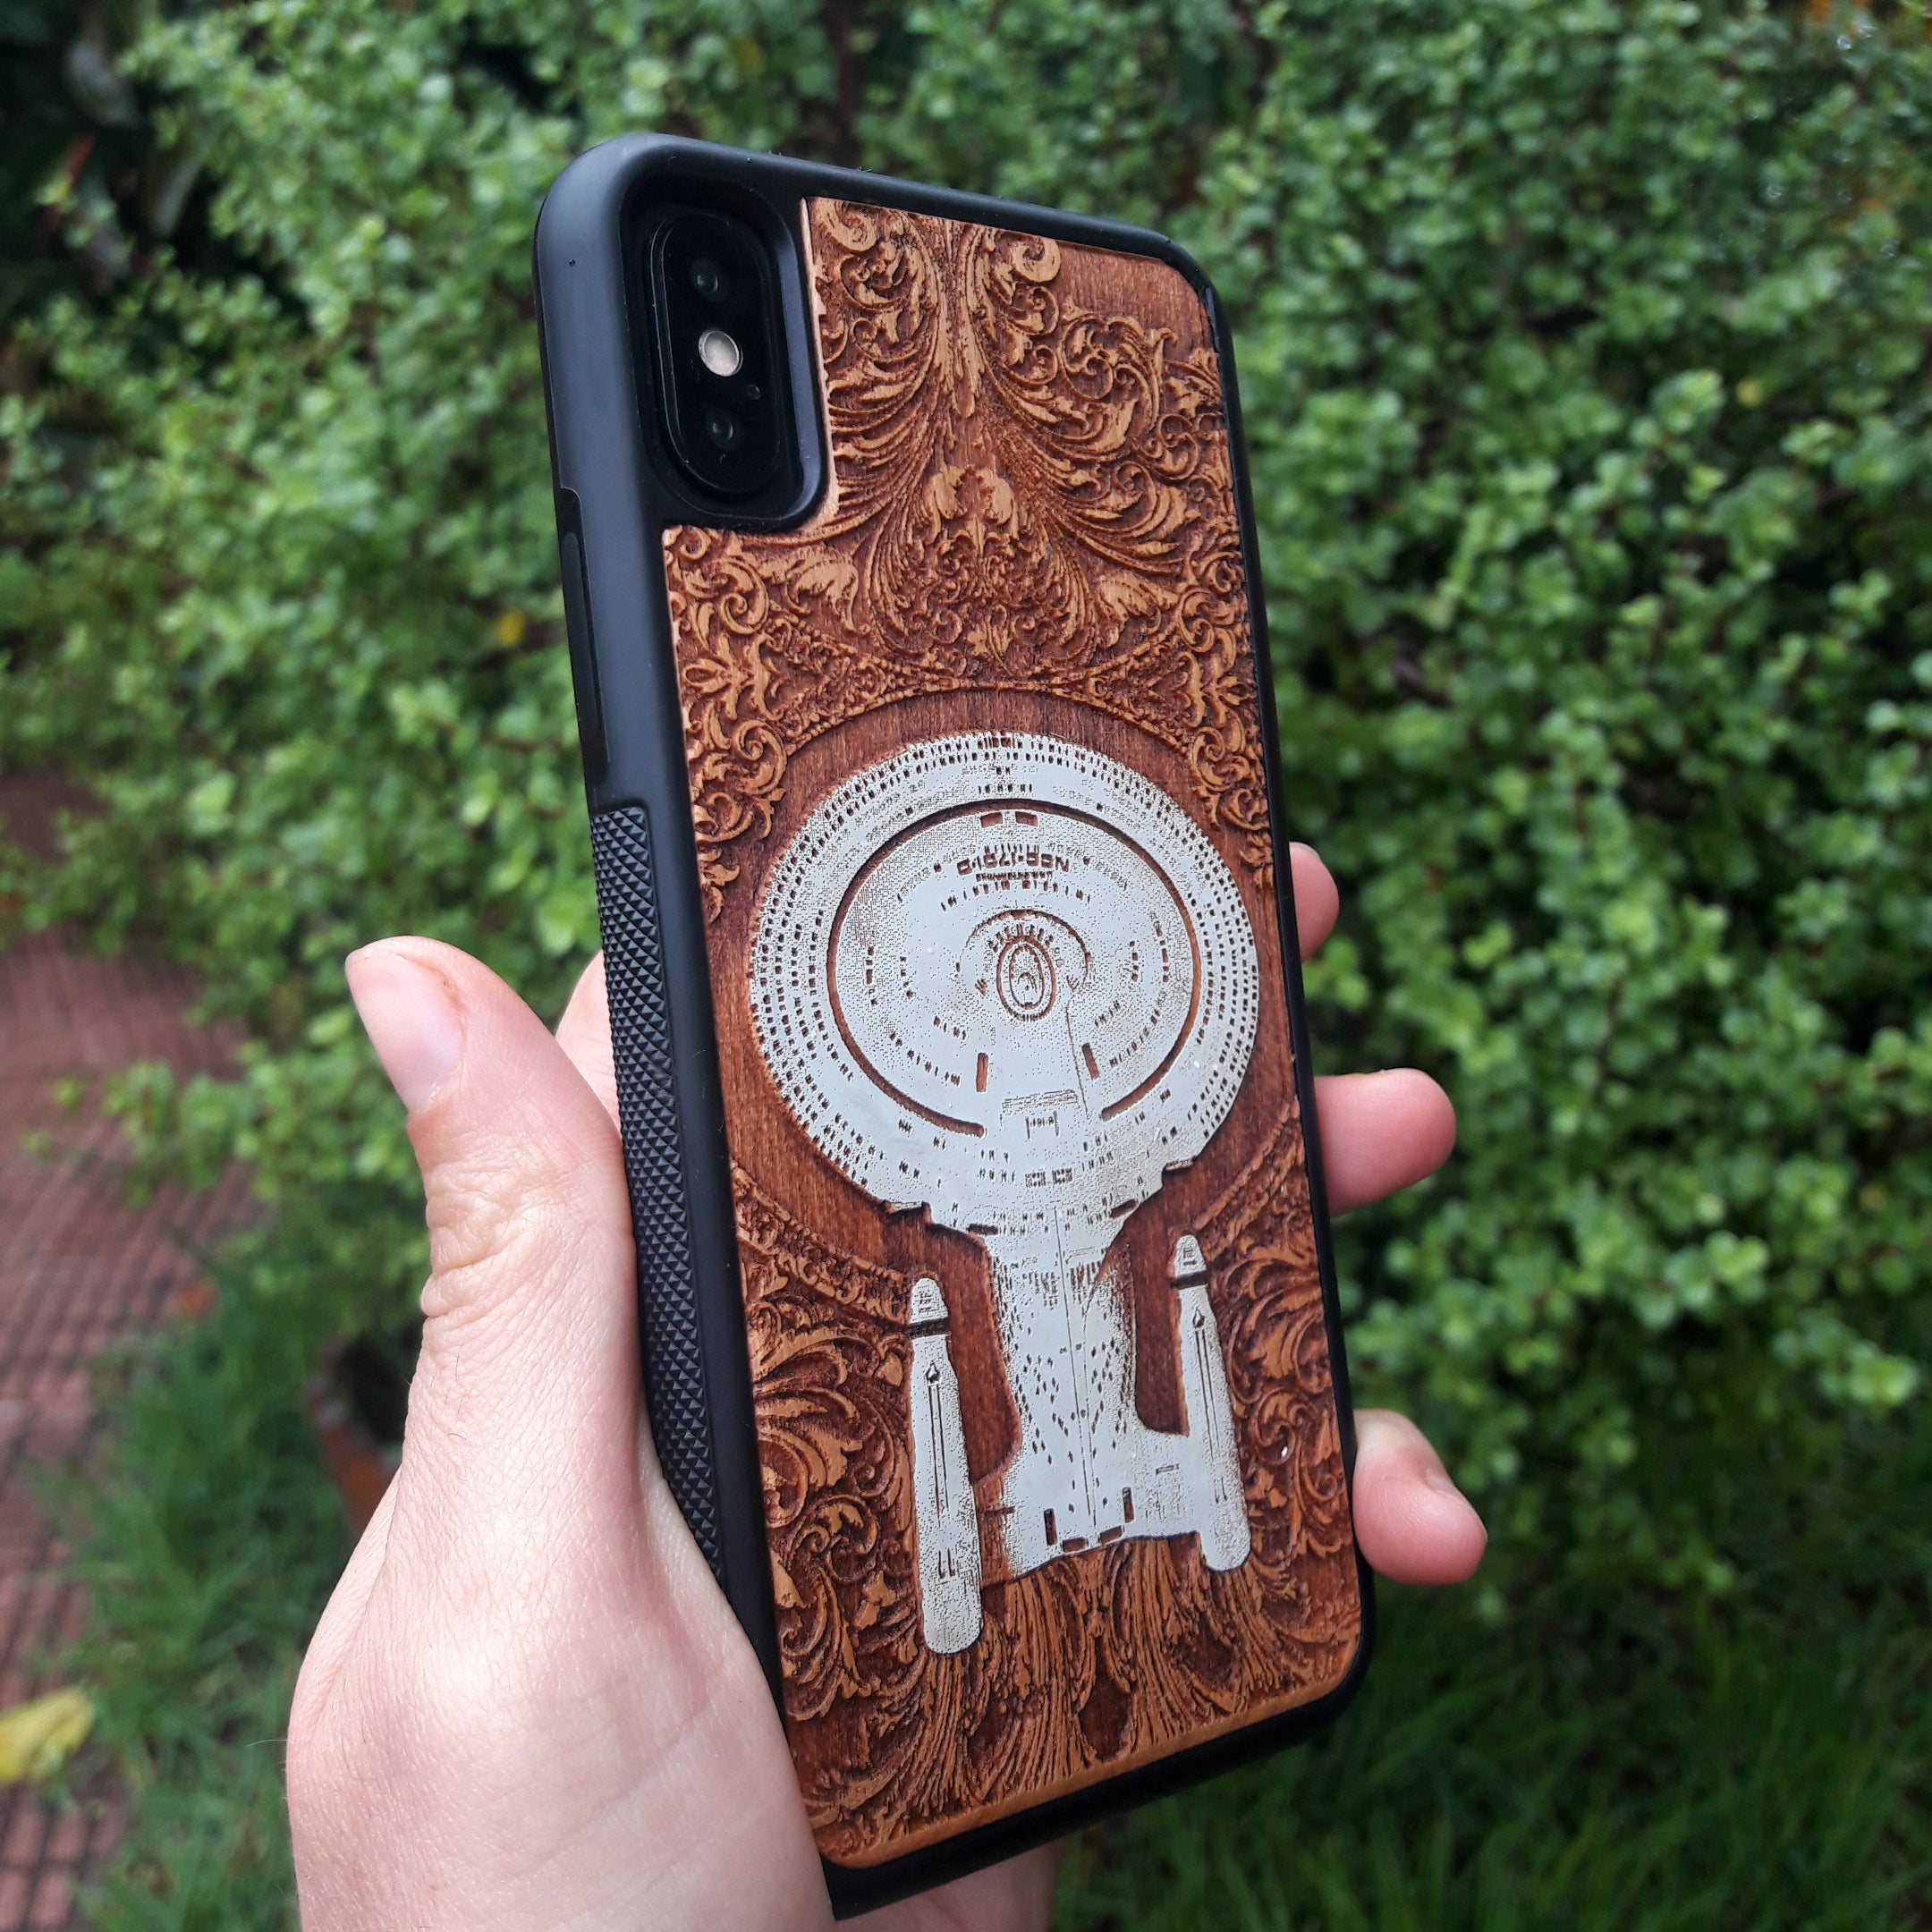 unique phone cover design